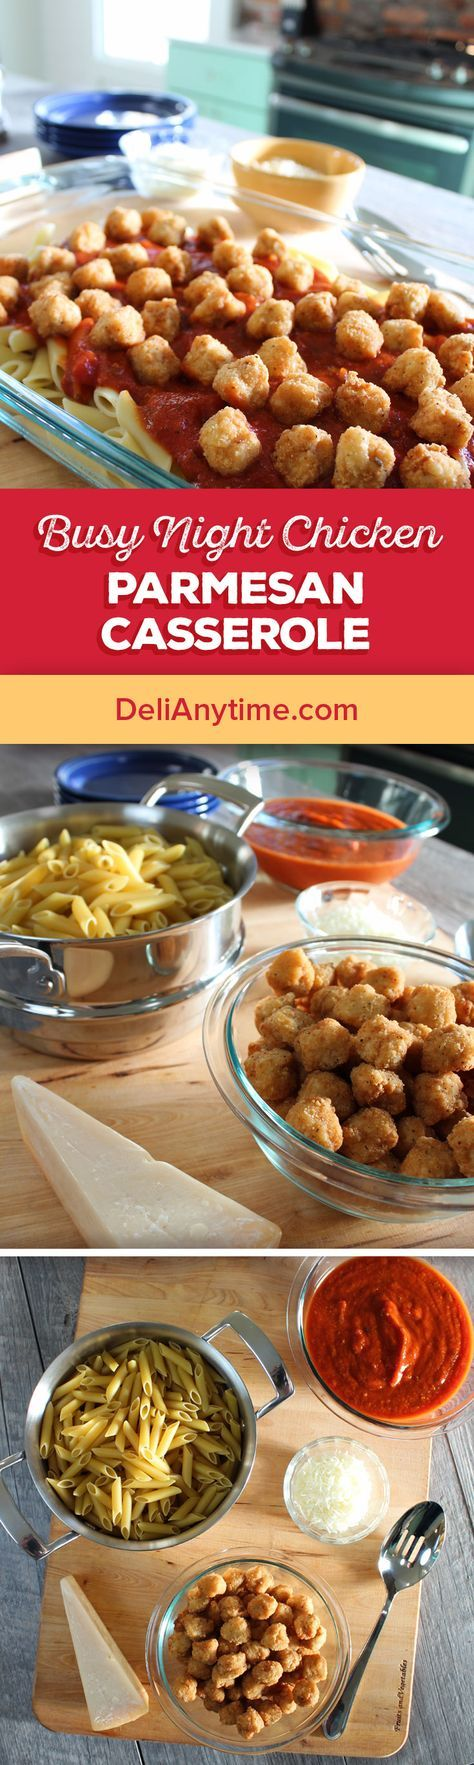 """1. Preheat oven to 350 degrees. Boil and drain pasta. 2. Reheat popcorn chicken. 3. In a 9""""X13"""" pan, stir together cooked pasta, popcorn chicken, spaghetti sauce, and shredded mozzarella. 4. Sprinkle top with parmesan cheese. 5. Cover with foil and bake until cheese is bubbly, usually about 30 minutes."""